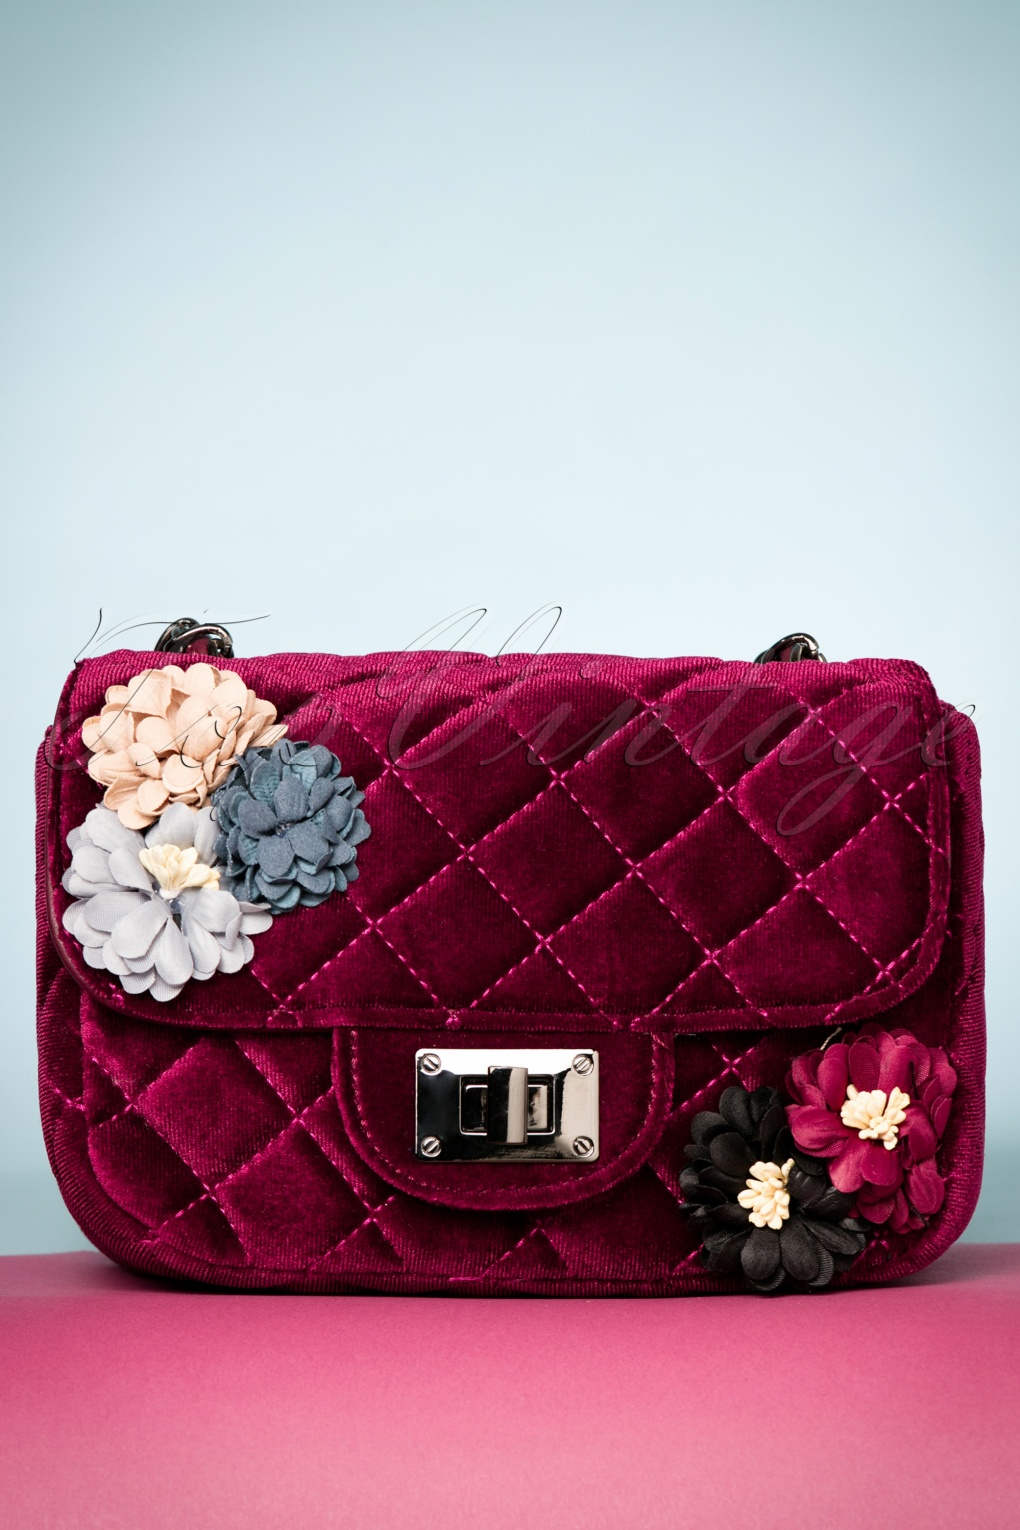 Vintage & Retro Handbags, Purses, Wallets, Bags 60s Quilted Floral Velvet Handbag in Burgundy £18.62 AT vintagedancer.com